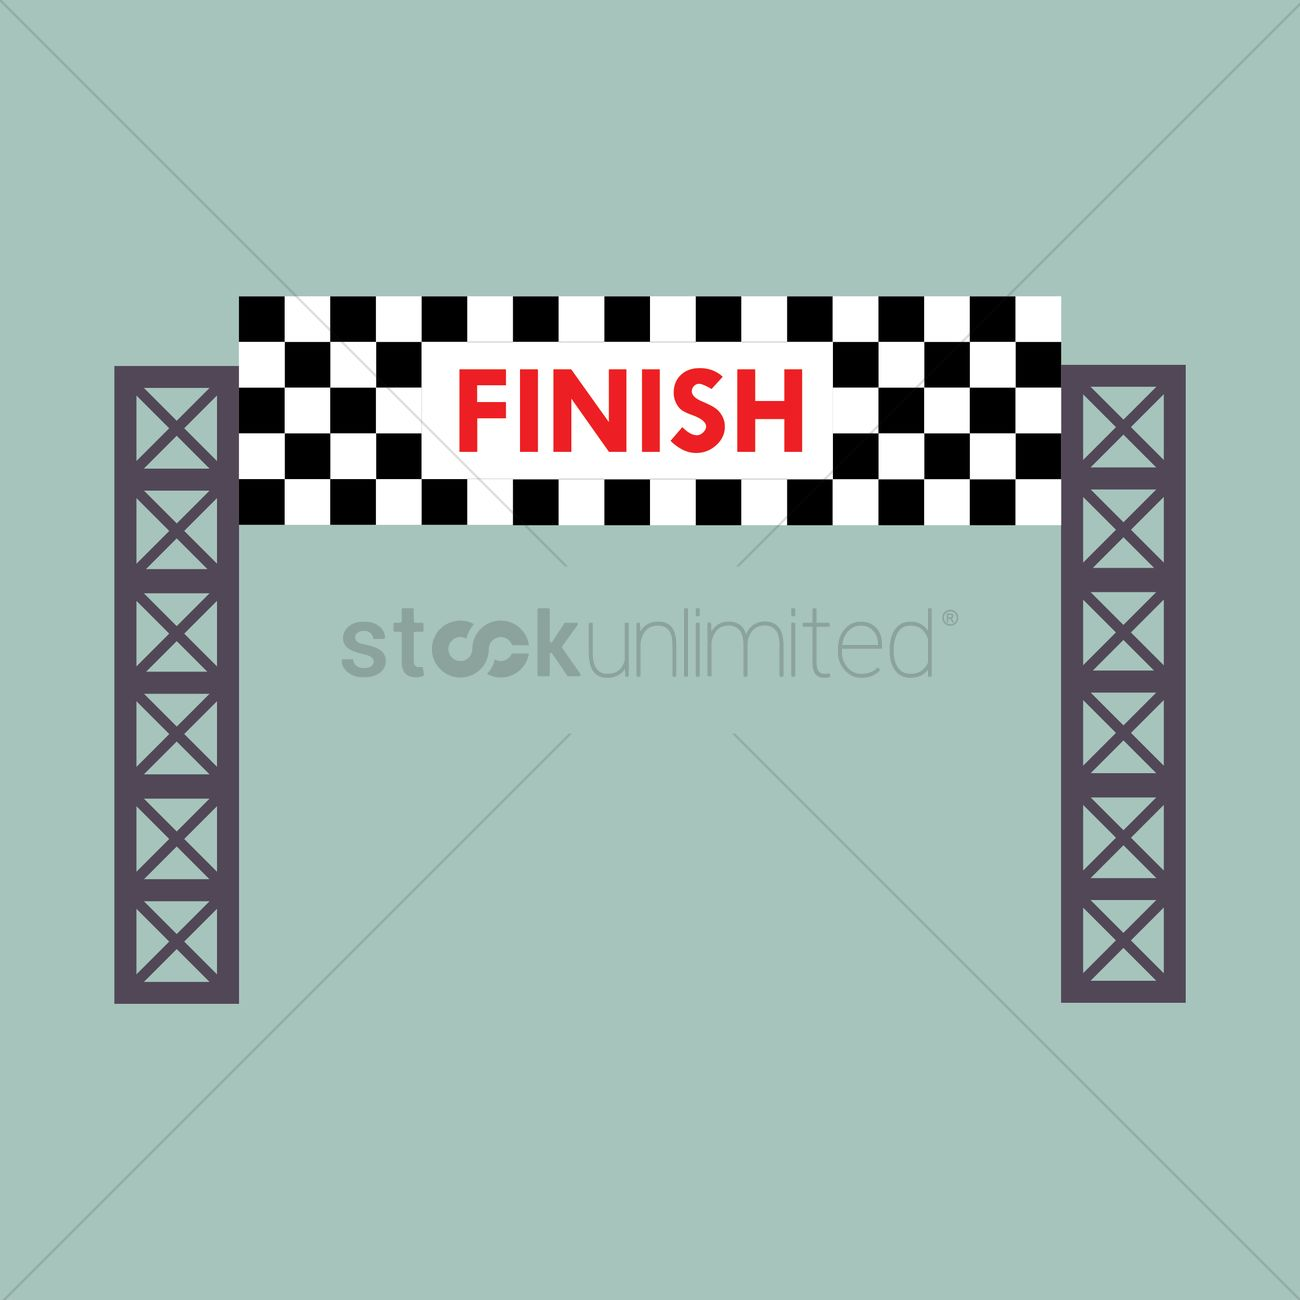 1300x1300 Finish Line Banner Vector Image